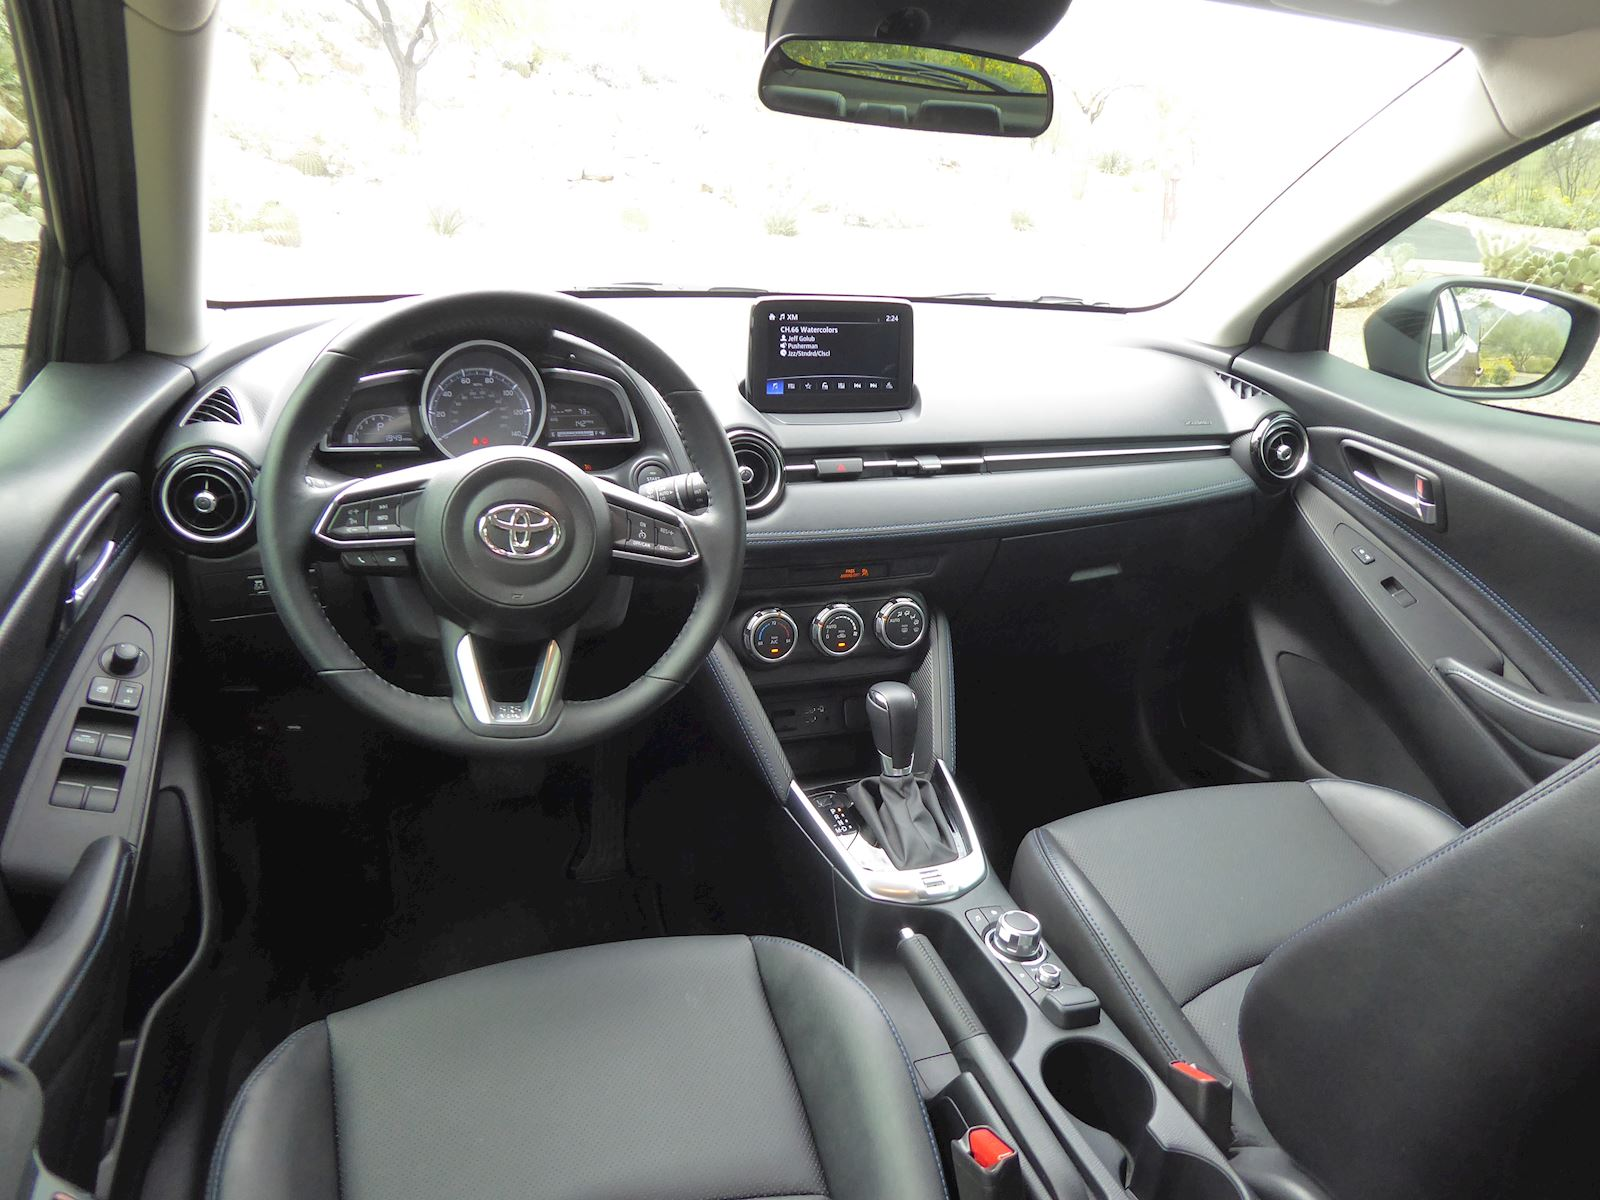 2020 Toyota Yaris interior dashboard view